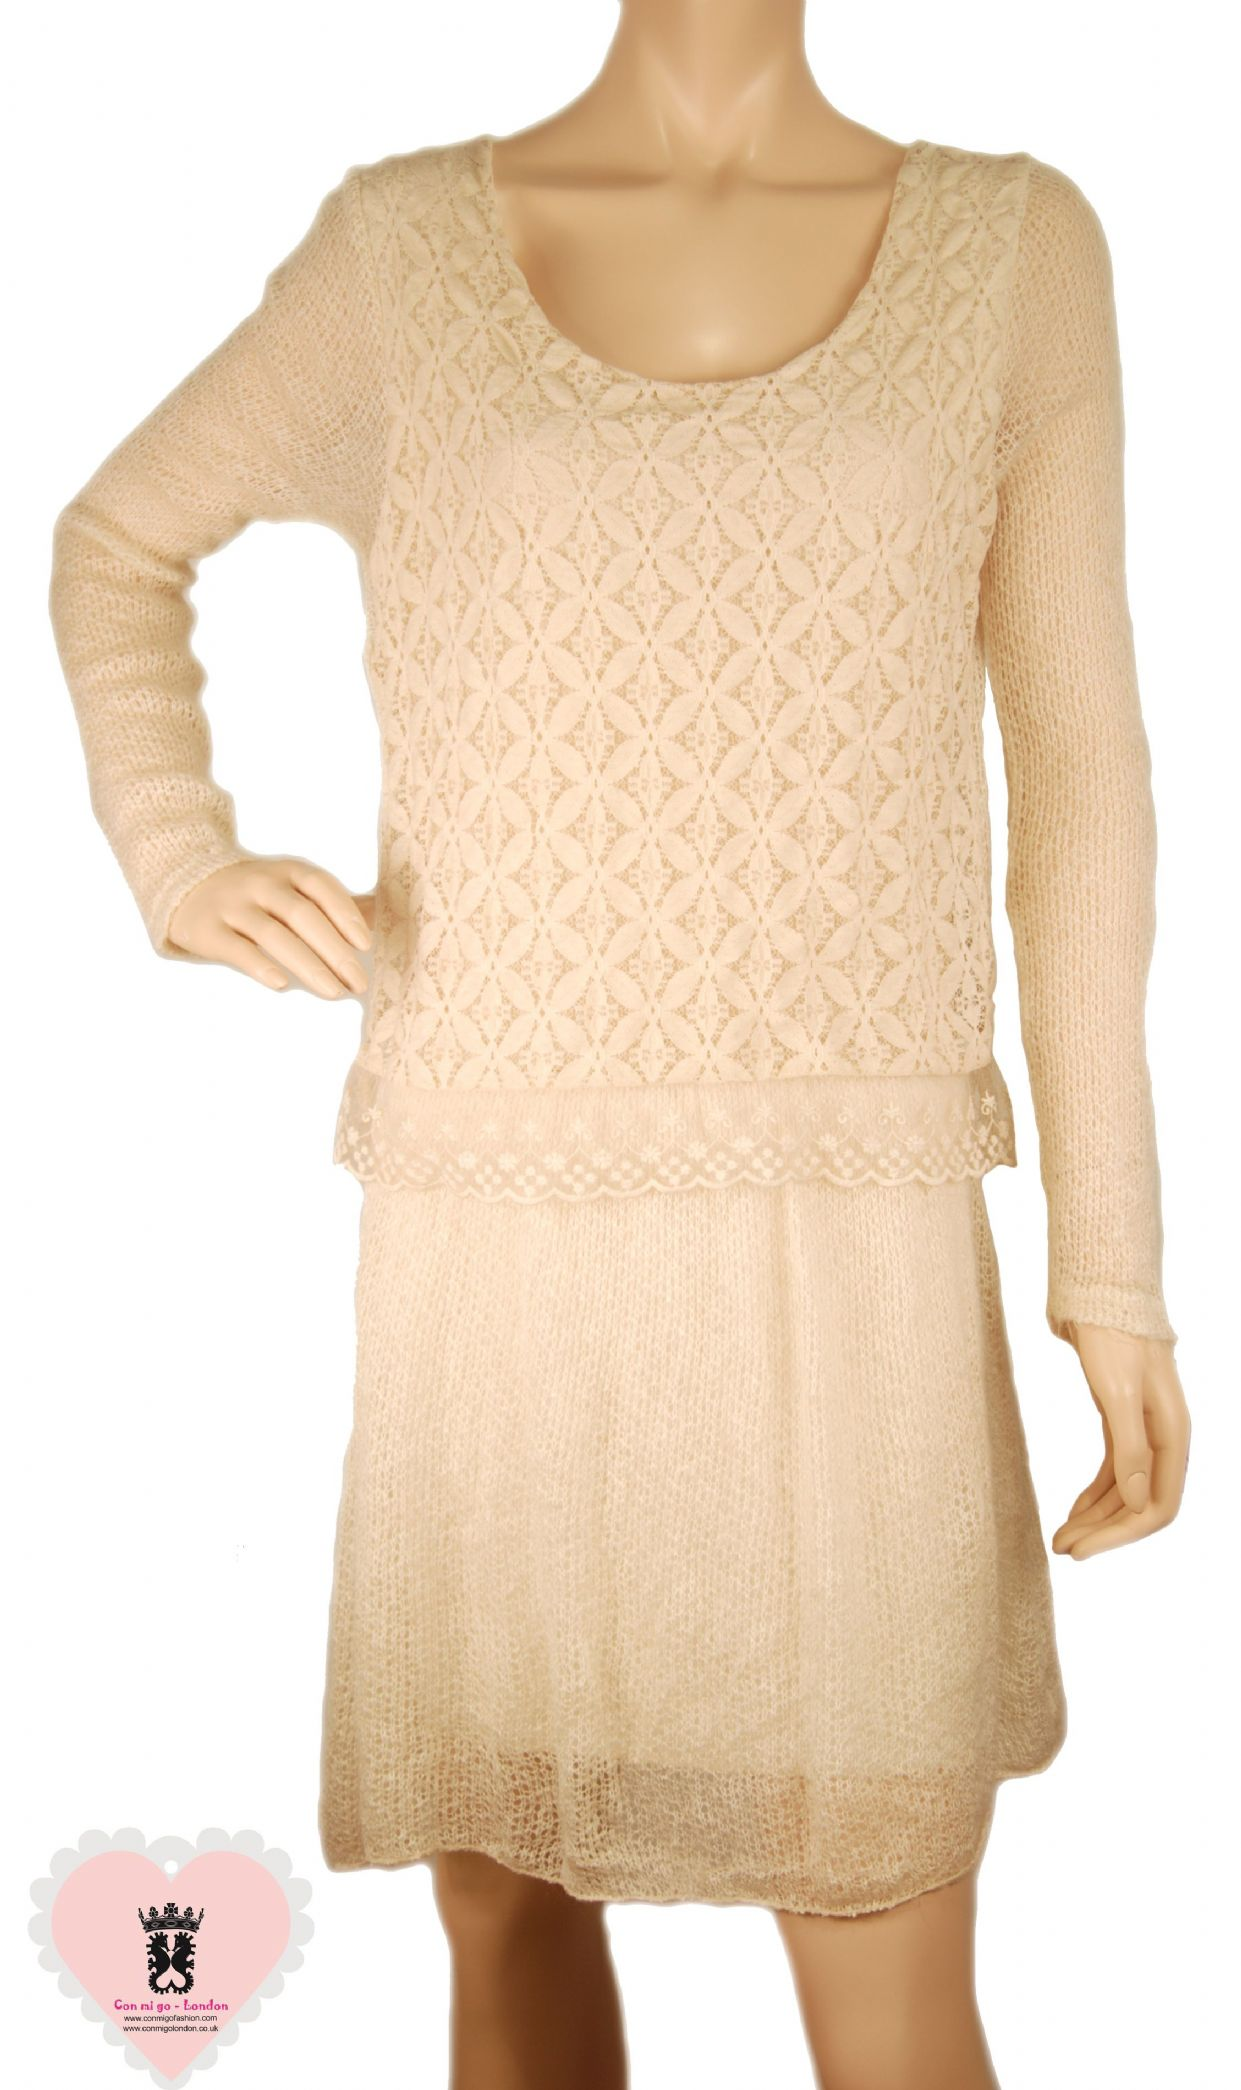 http://www.conmigolondon.co.uk/ekmps/shops/conmigo/images/made-in-italy-abg132-beige-fitted-lace-dress-%5B3%5D-11422-p.jpg